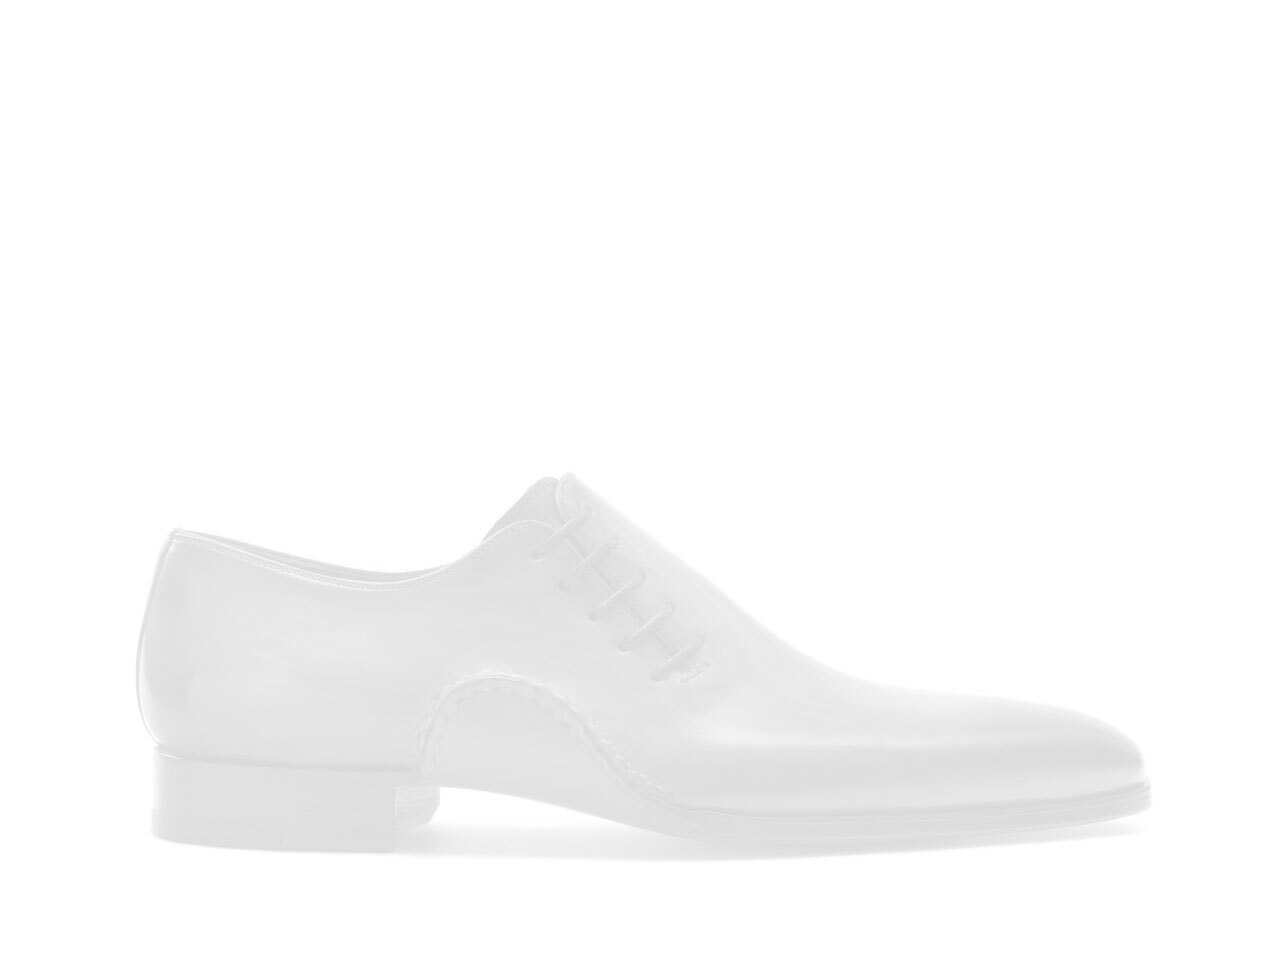 Grey hand painted calfskin low-top sneakers shoes for men - Magnanni